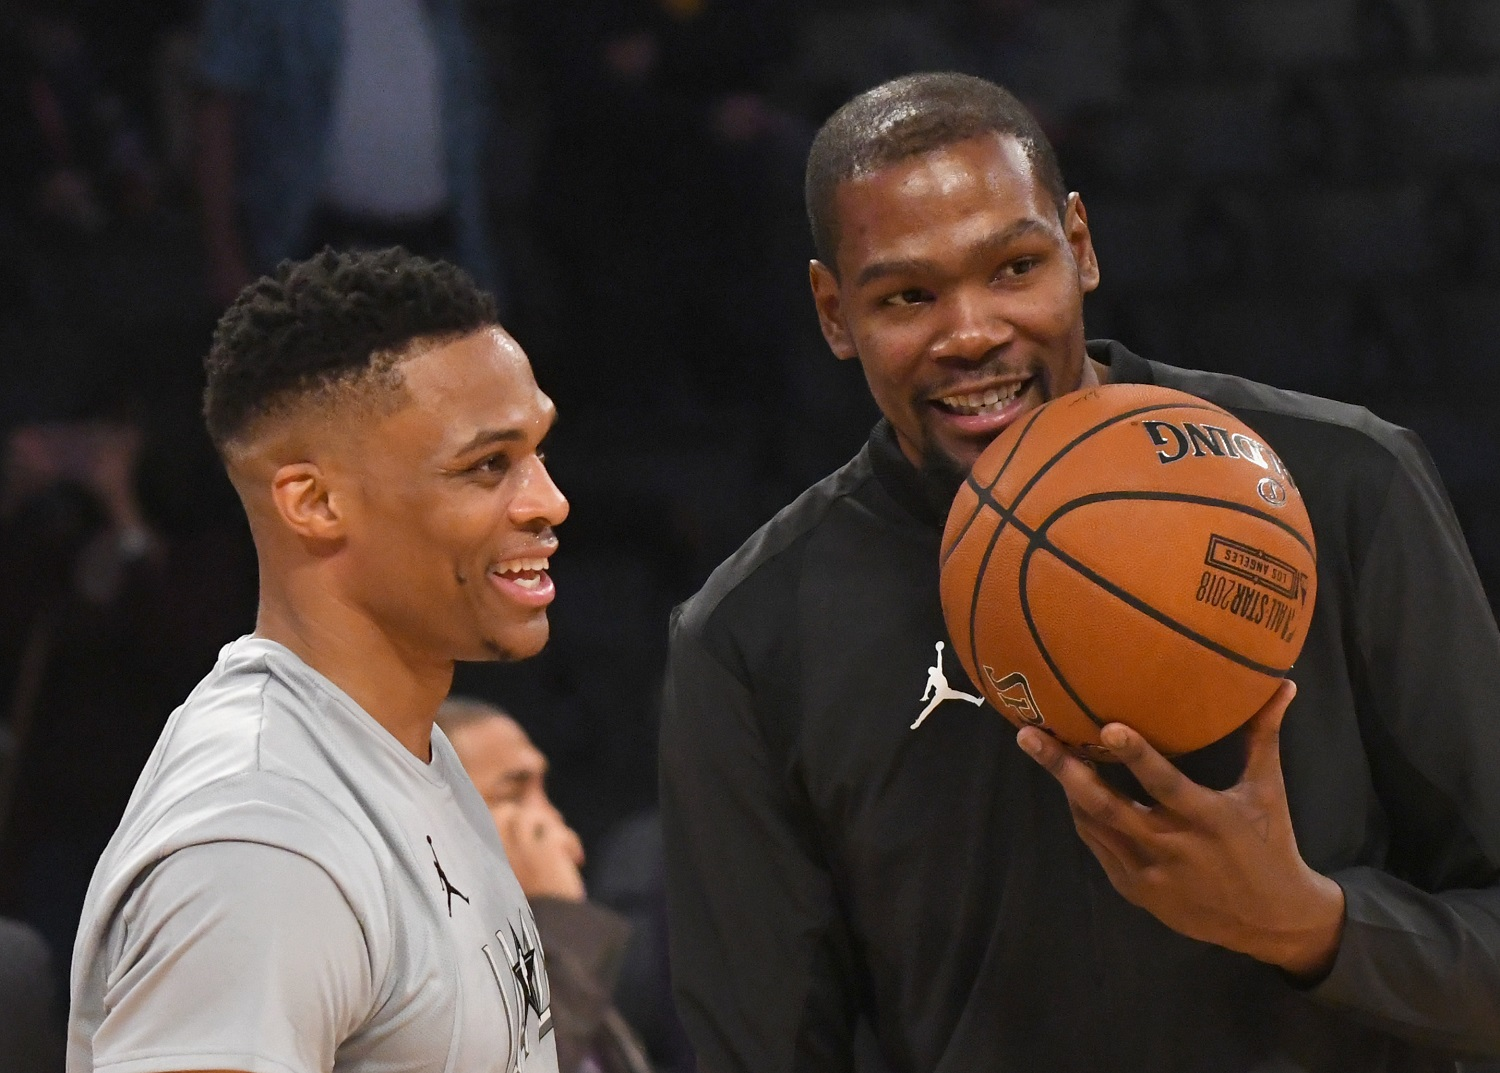 Russell Westbrook and Kevin Durant warm up before the 2018 NBA All-Star Game